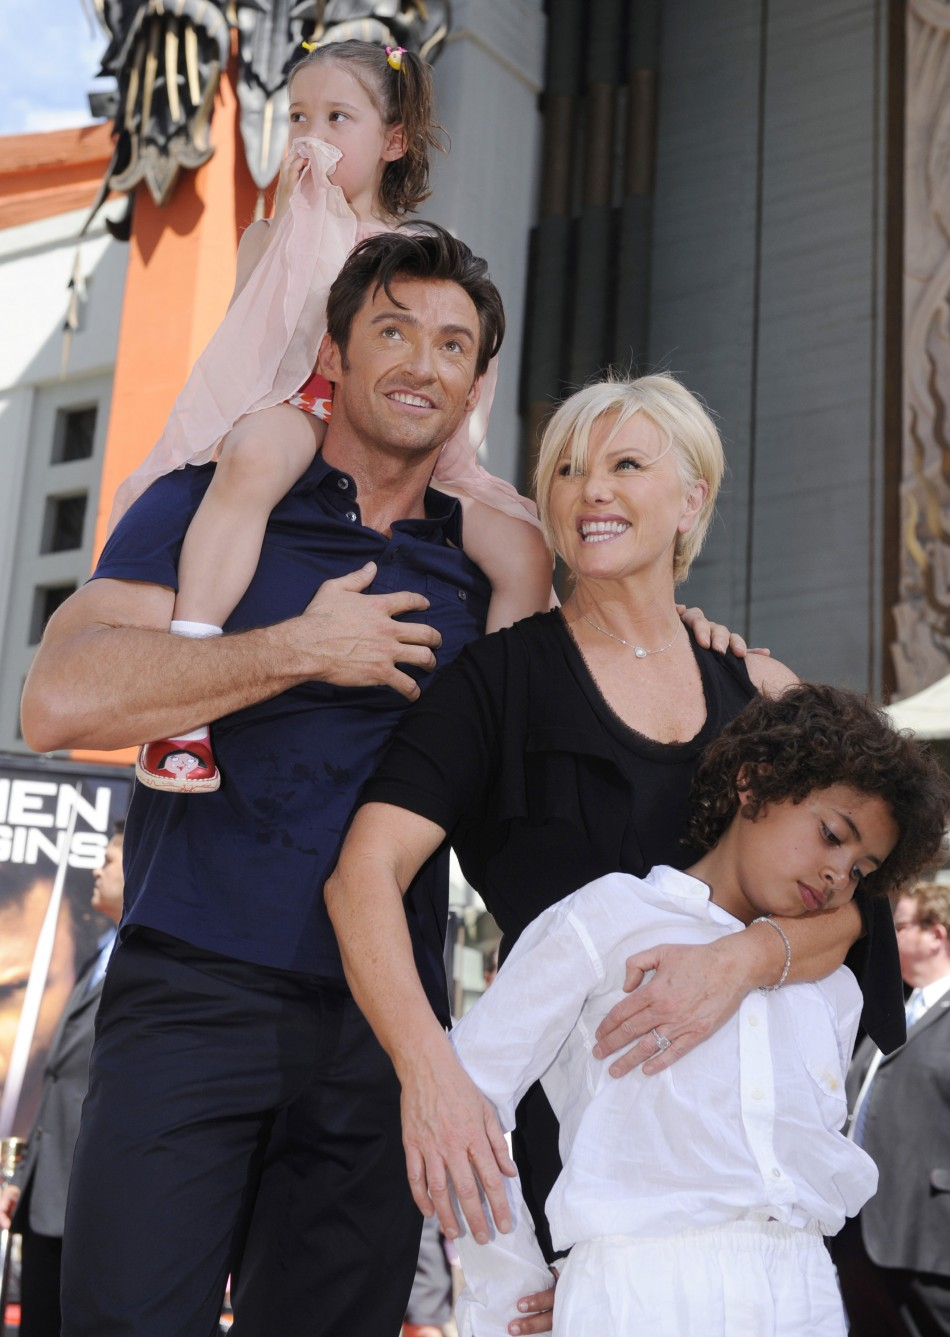 Hugh Jackman poses for photographers during a ceremony in Hollywood